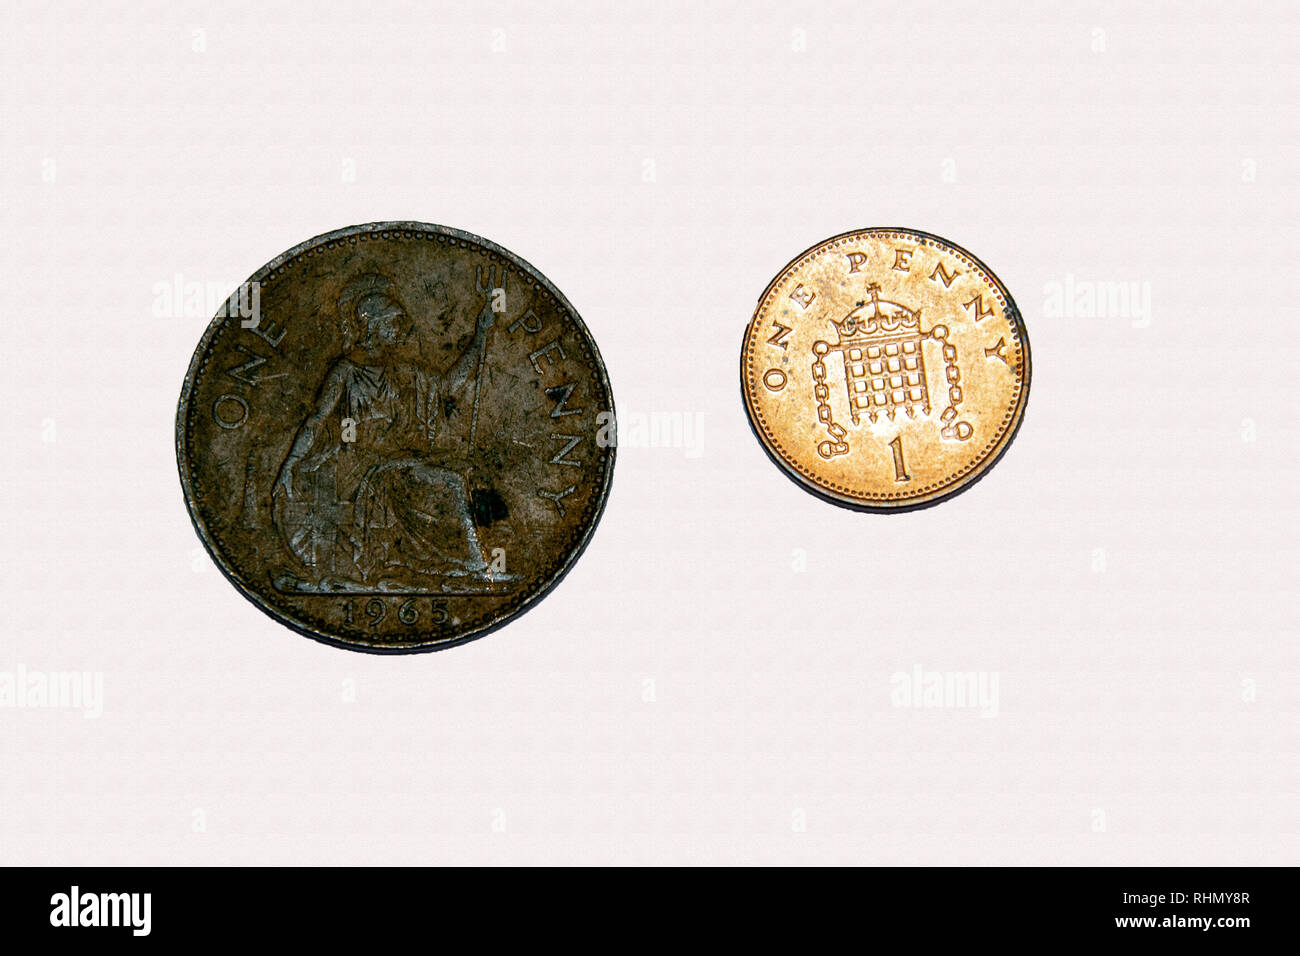 Example of pre and post decimal British 1 penny coinage showing different size and design - Stock Image